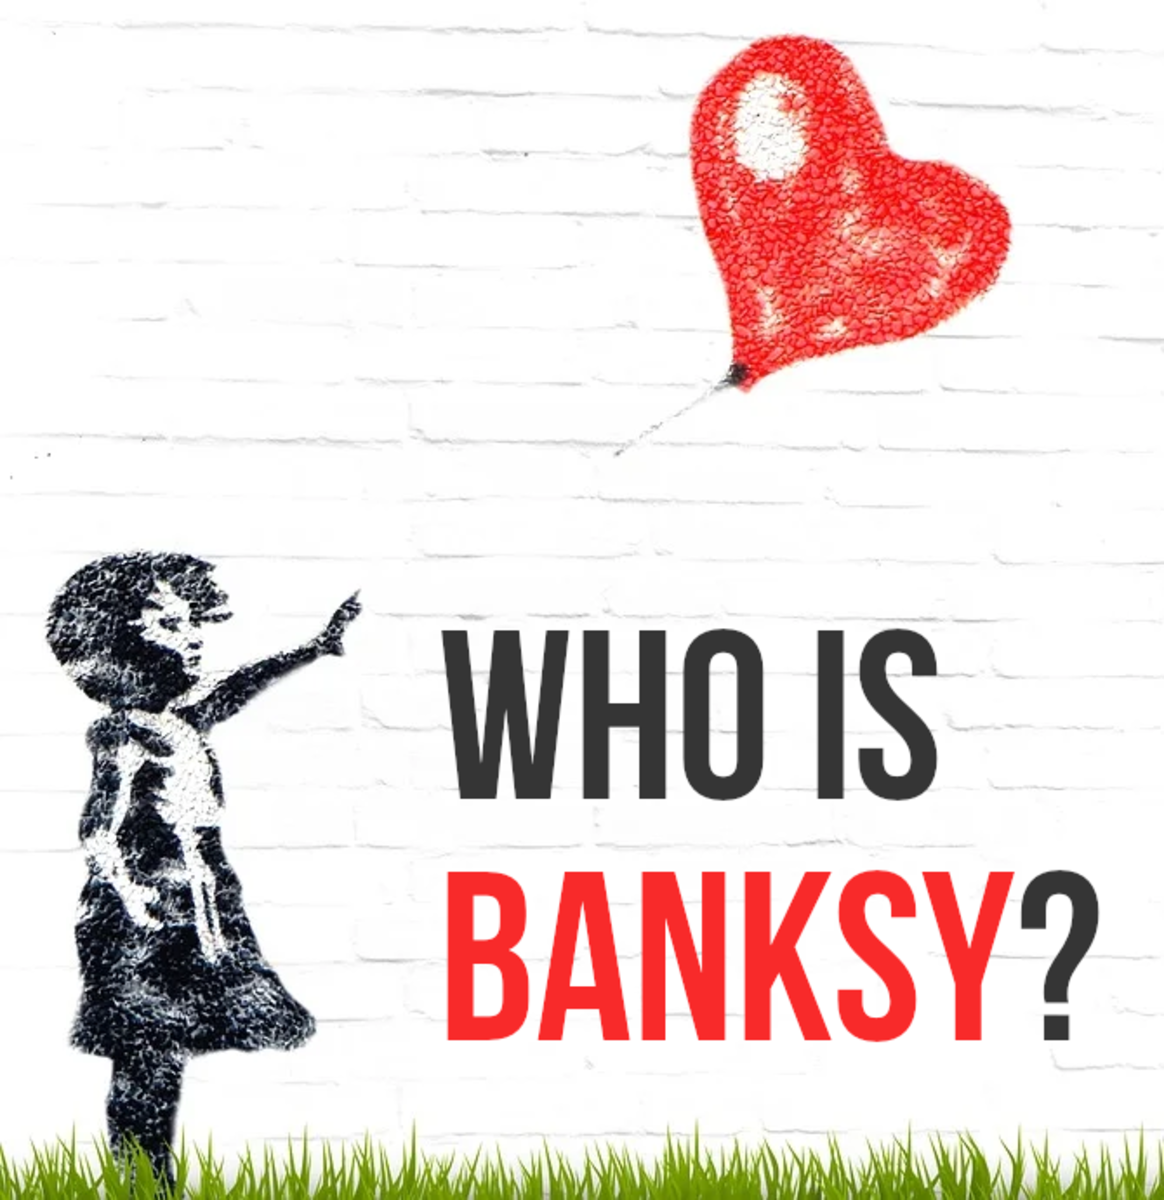 Who is the elusive street artist, Banksy? Read on for clues to his identity...